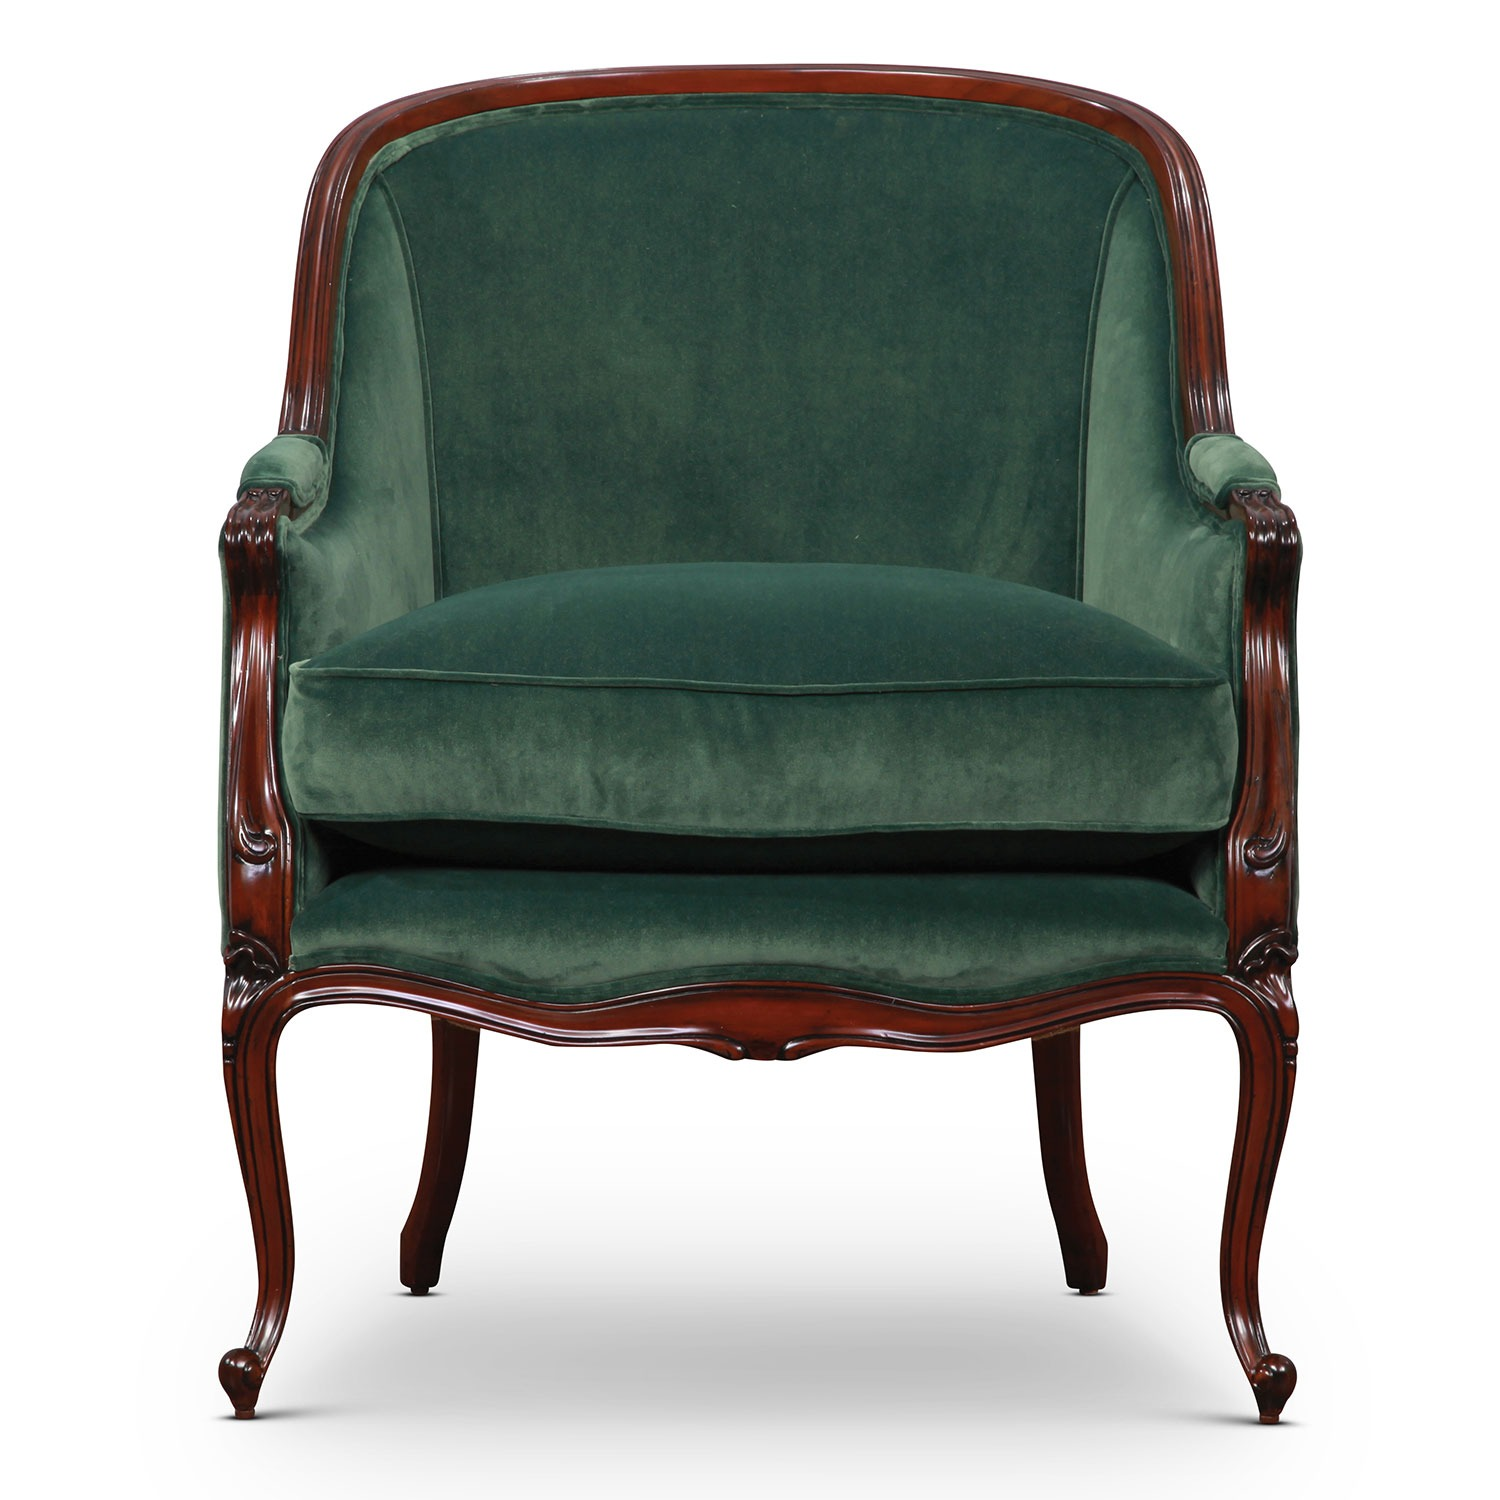 Mahogany Hepplewhite tub accent chair